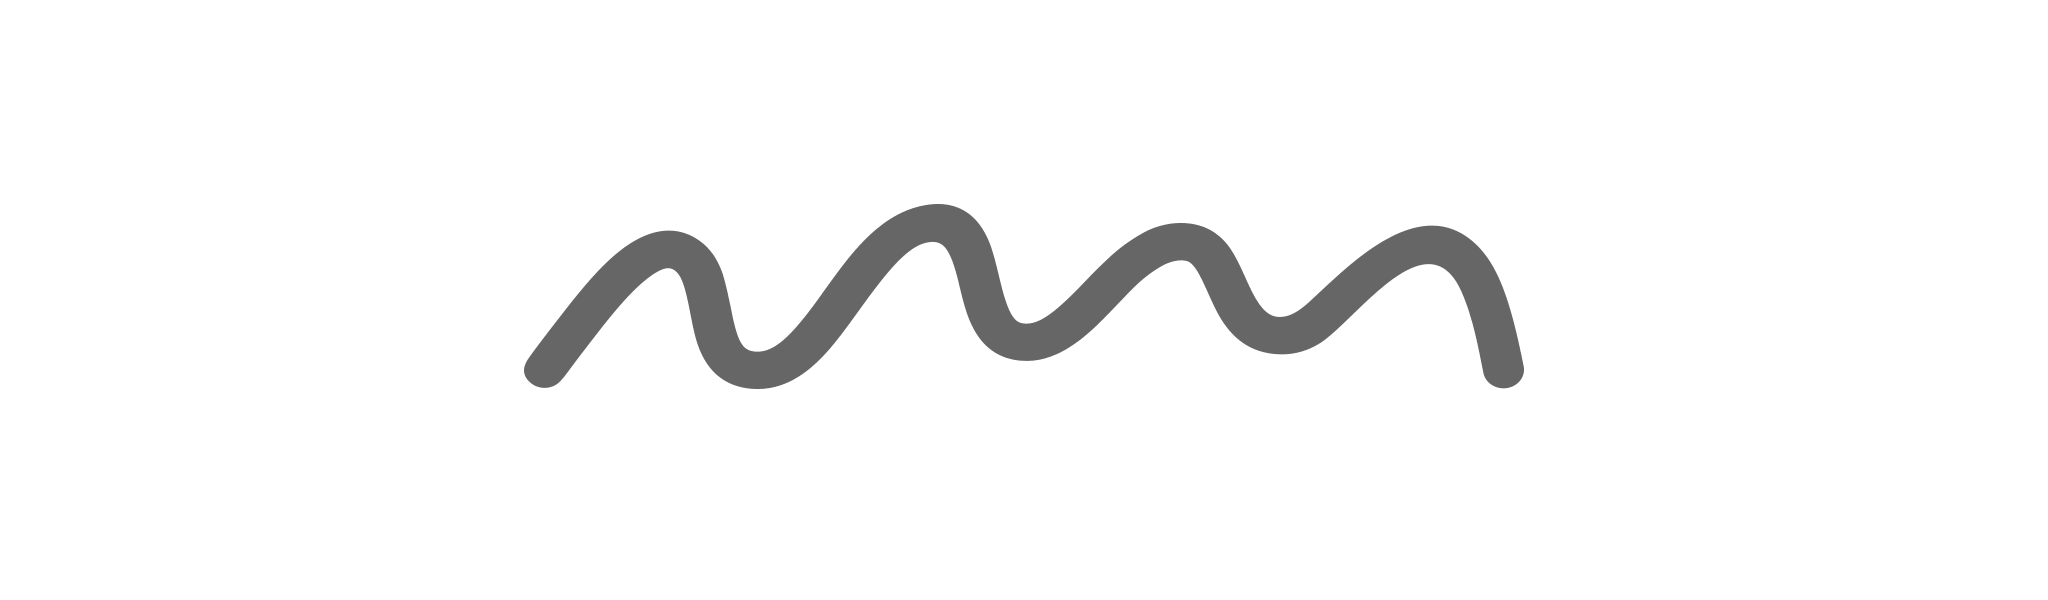 the-squiggle-alpha.png